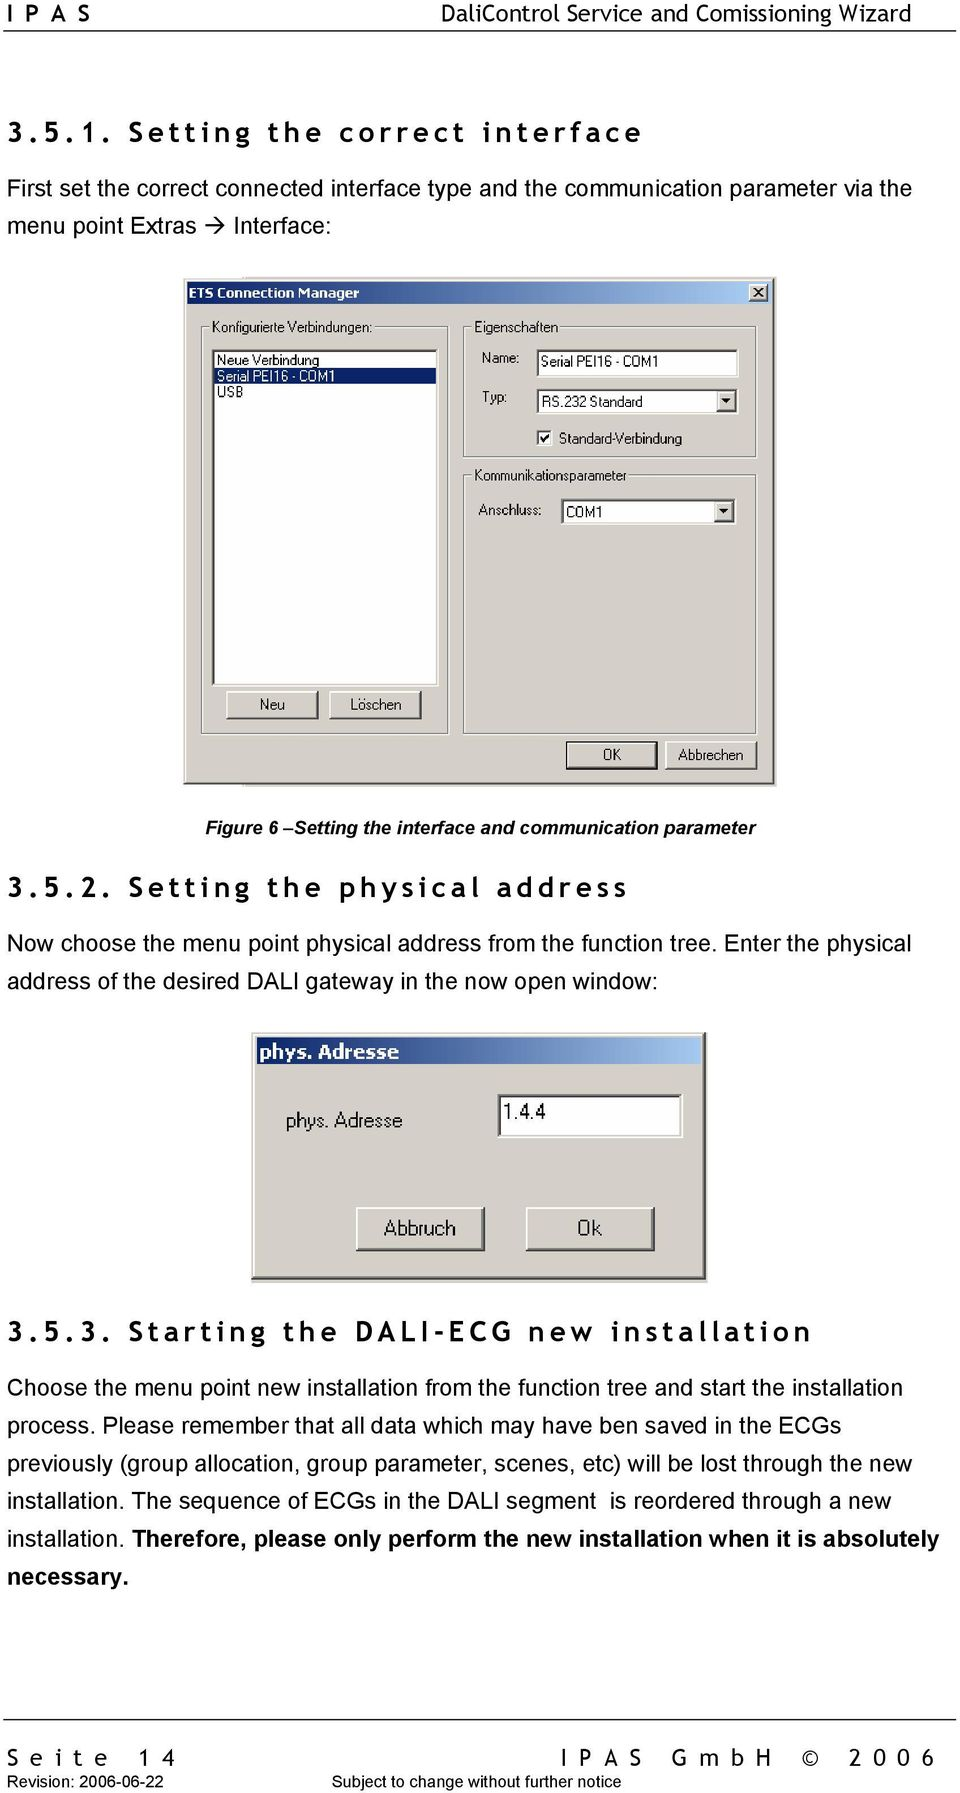 parameter 3.5.2. Setting the physical address Now choose the menu point physical address from the function tree. Enter the physical address of the desired DALI gateway in the now open window: 3.5.3. Starting the DALI-ECG new installation Choose the menu point new installation from the function tree and start the installation process.